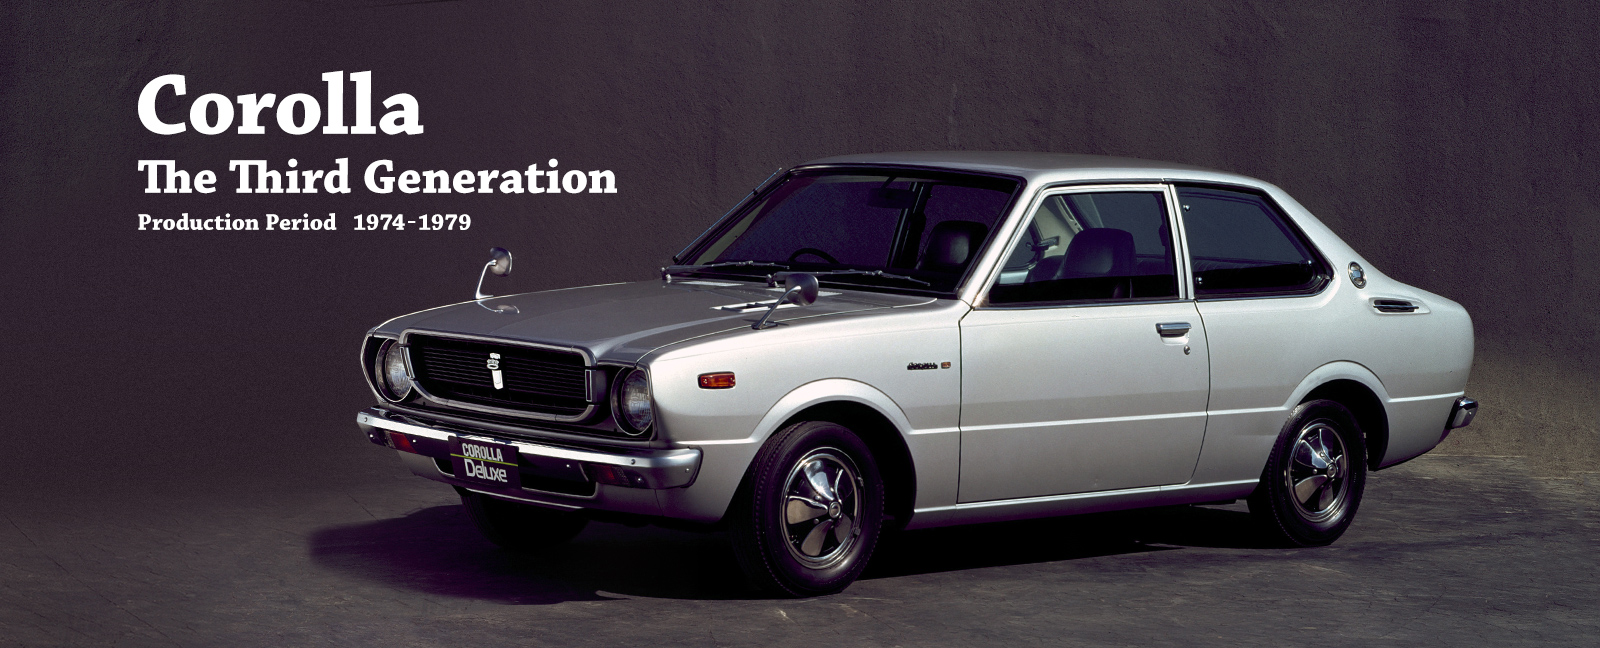 hight resolution of vehicle heritage corolla the third generation